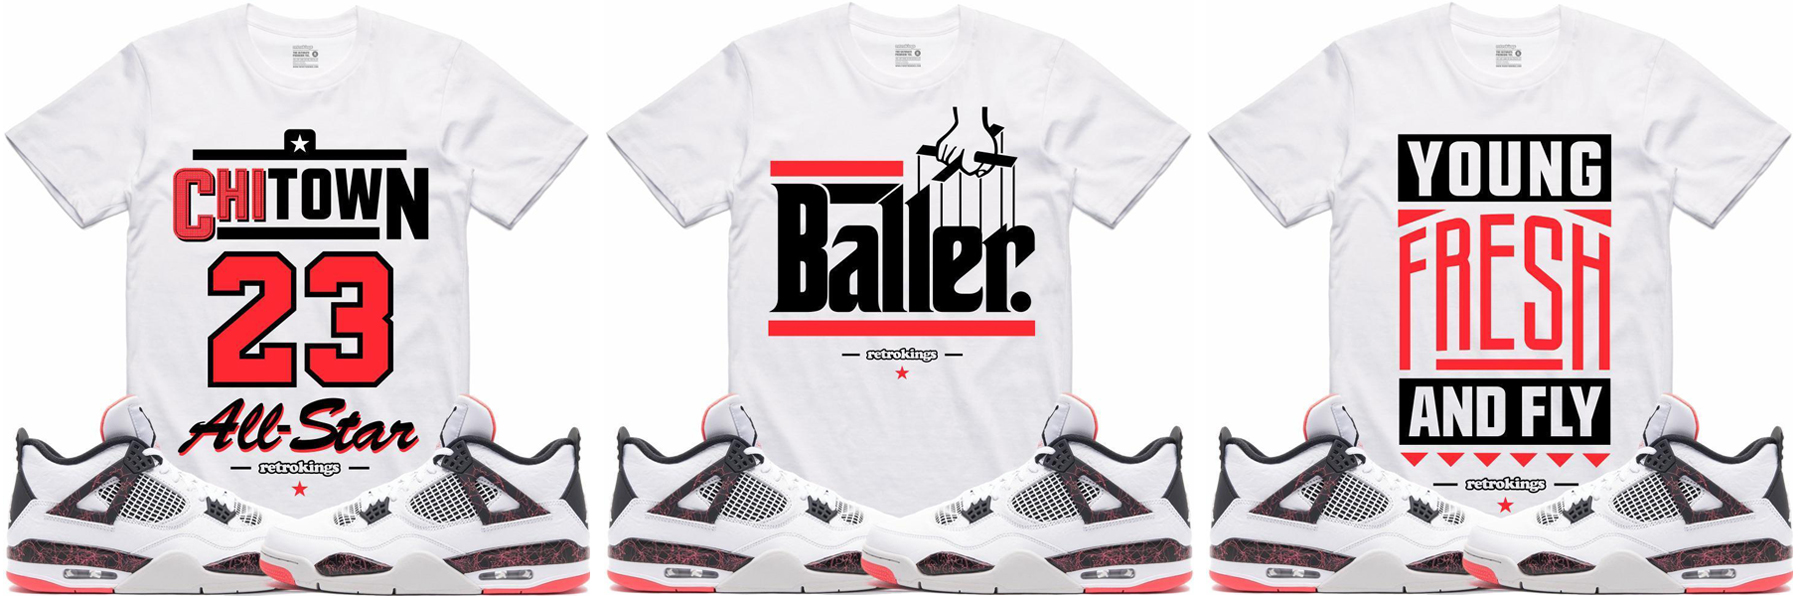 9b9172f6212 Air Jordan 4 Hot Lava Sneaker Outfits | SneakerFits.com